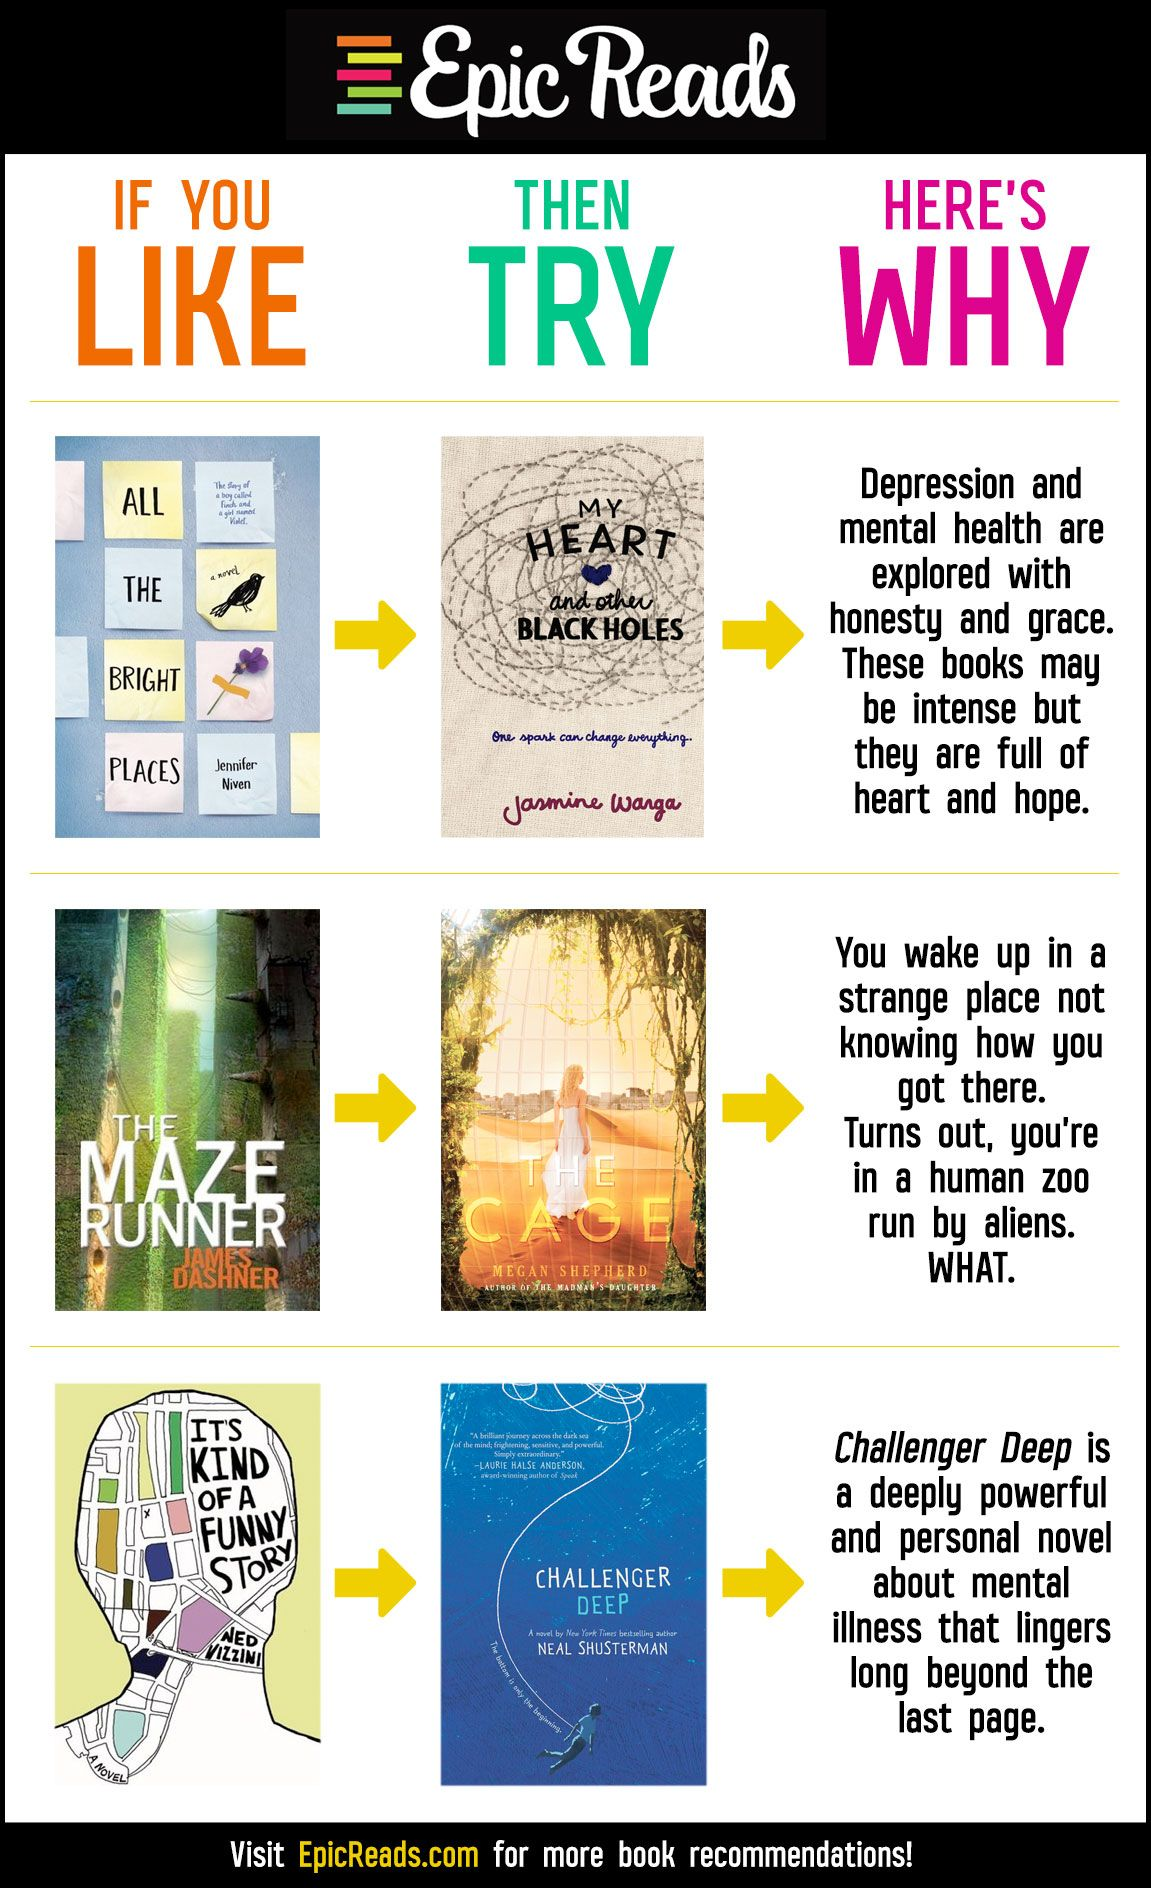 books to read. Like, Try, Why #43: All the Bright Places, Maze Runner, It's  Kind of a Funny Story